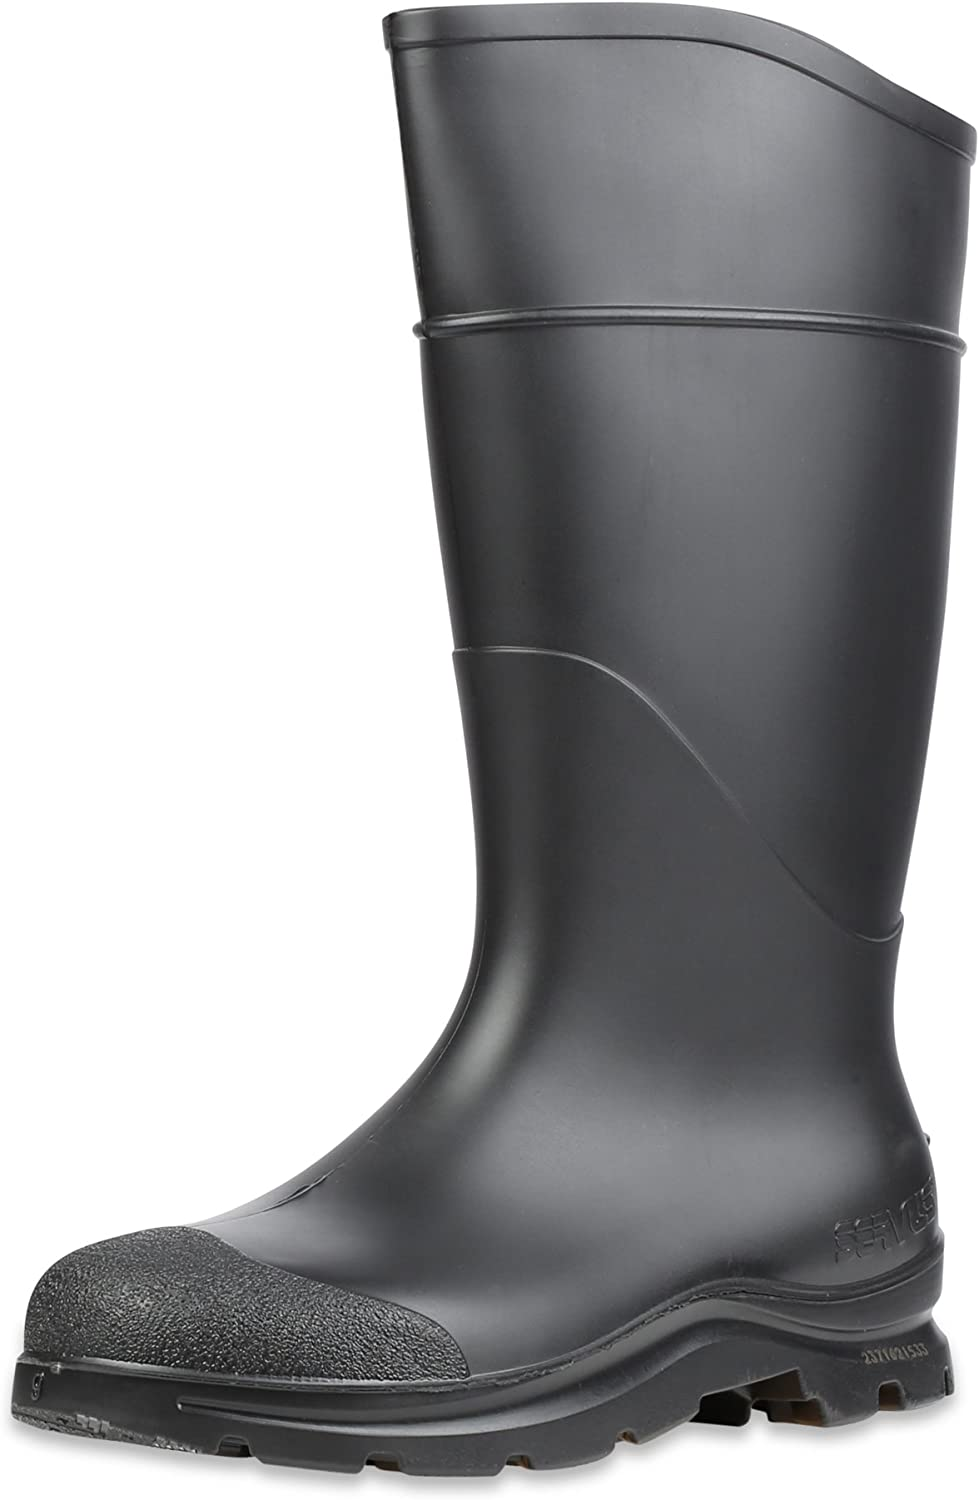 Servus PVC Comfort Technology Soft Toe Boots